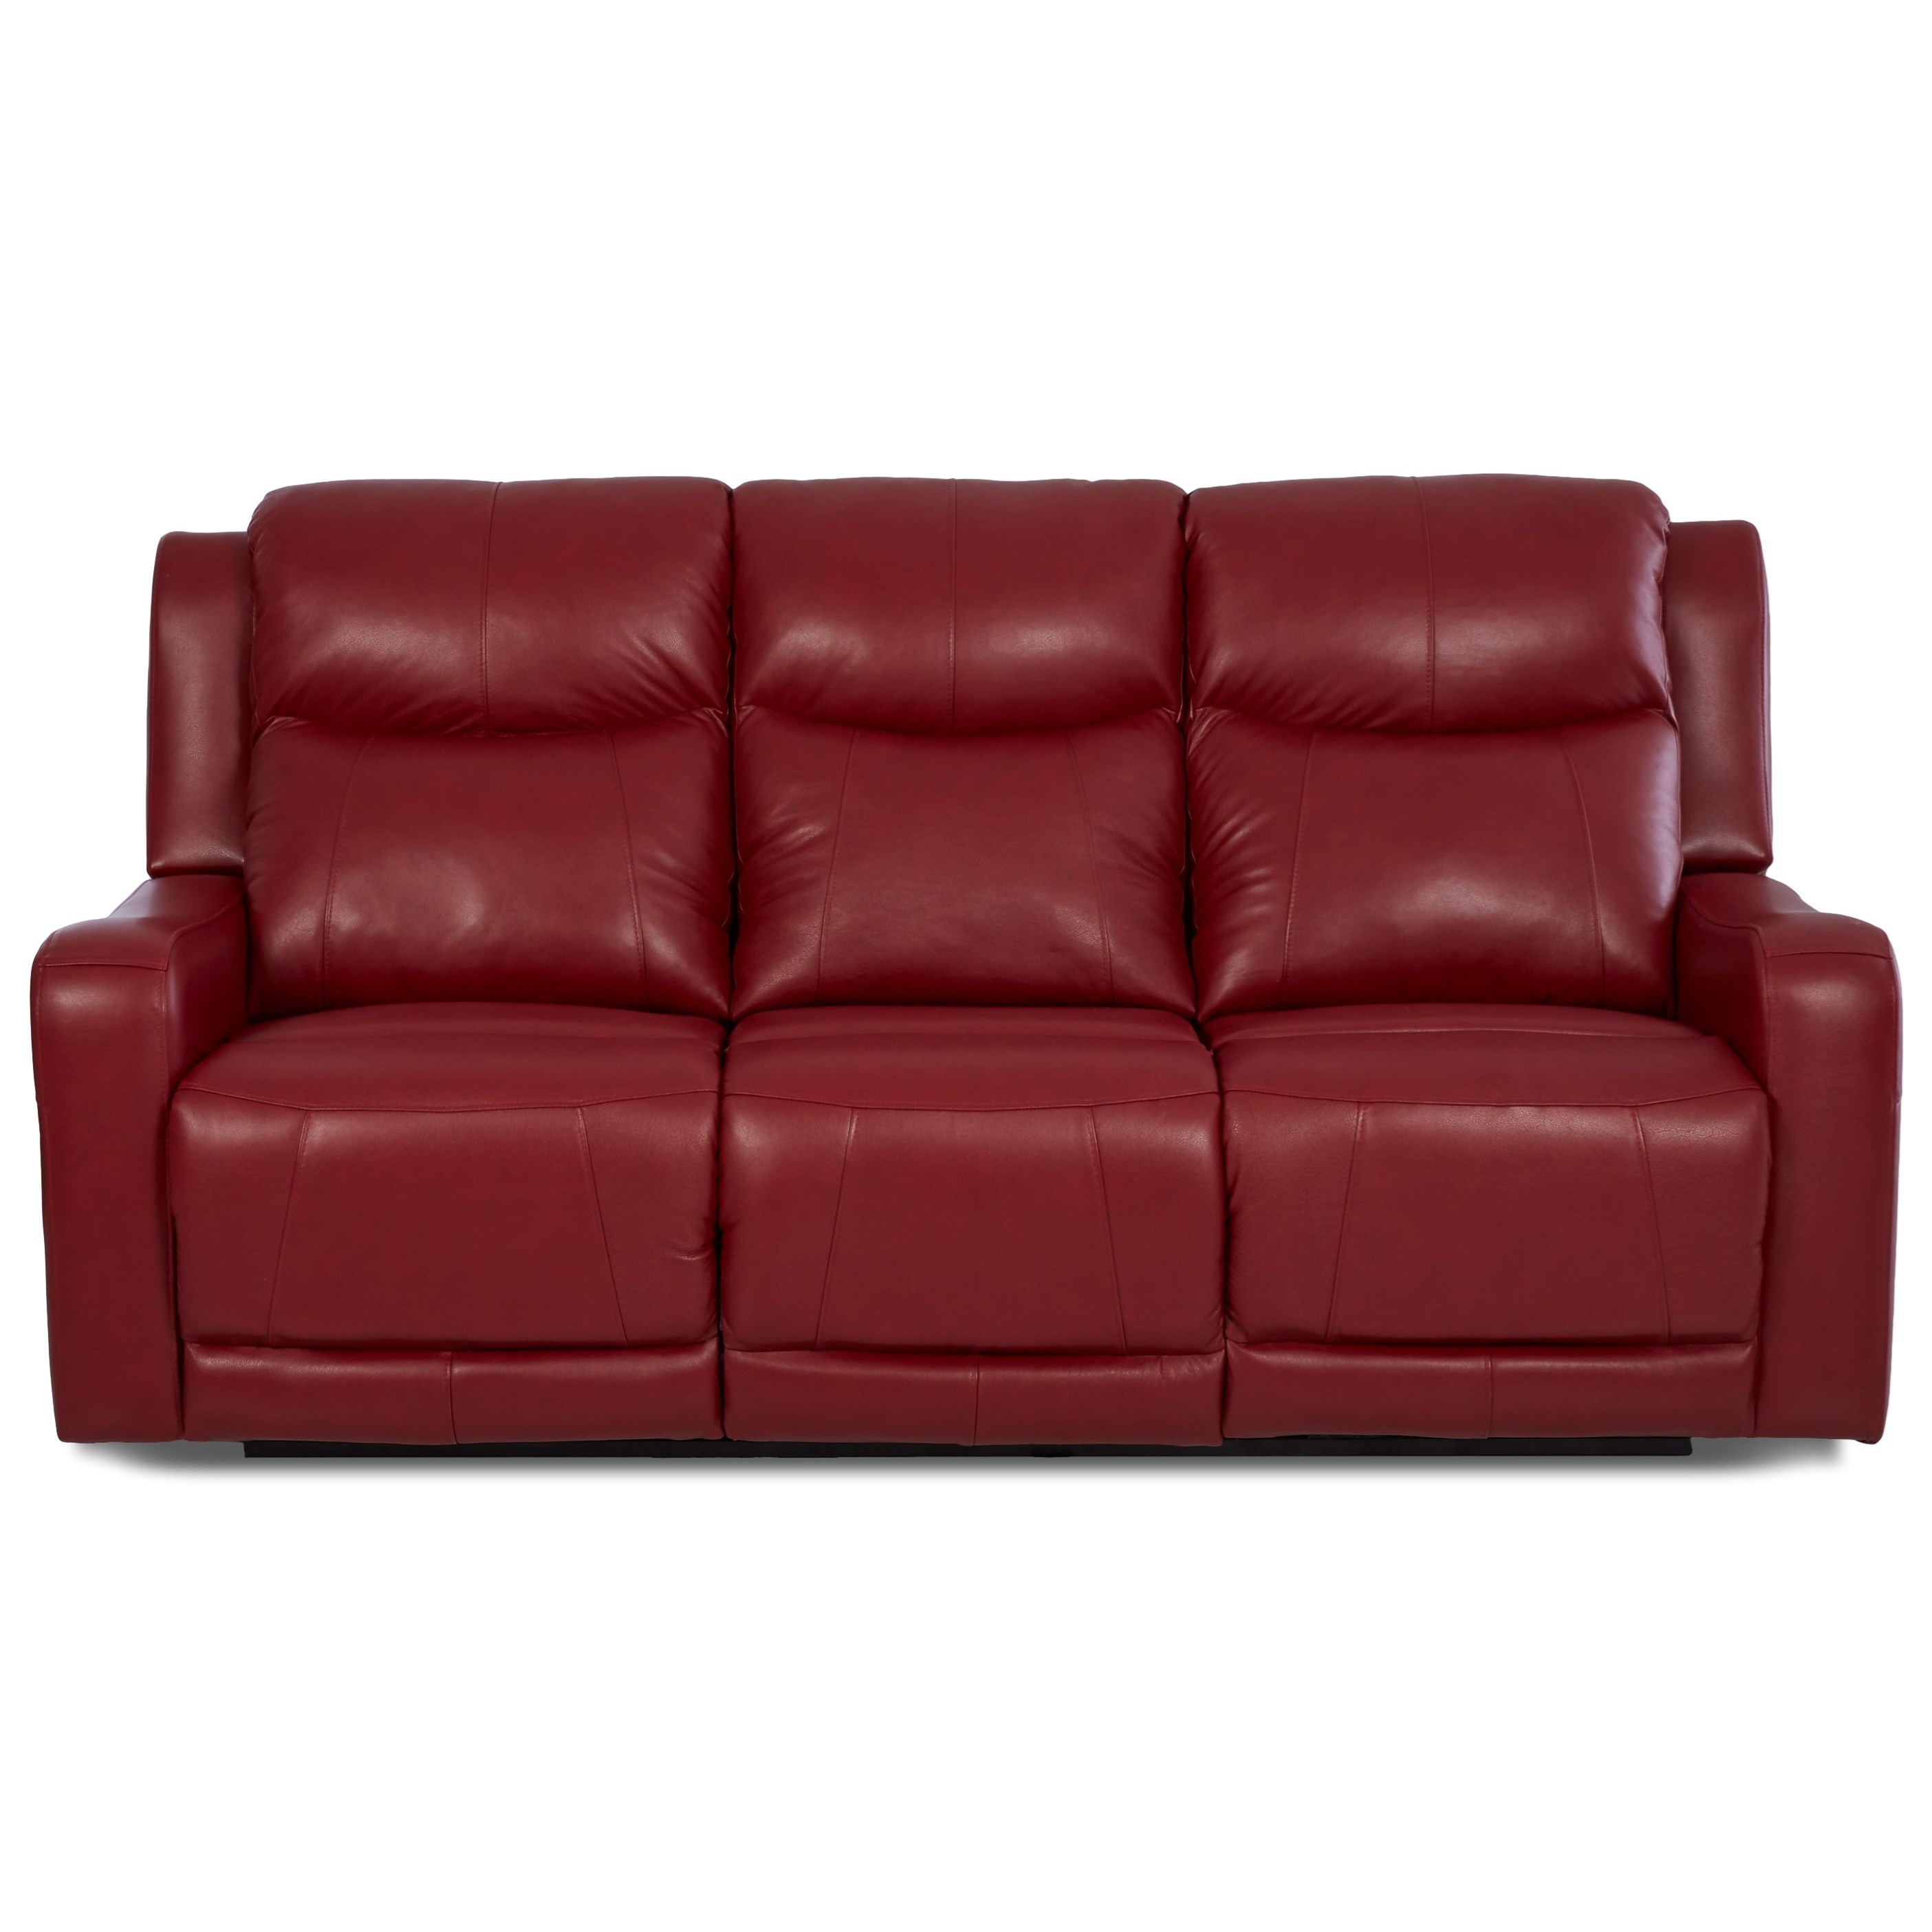 Klaussner barnett lv74803 6 pwrs power reclining sofa with Power reclining sofas and loveseats